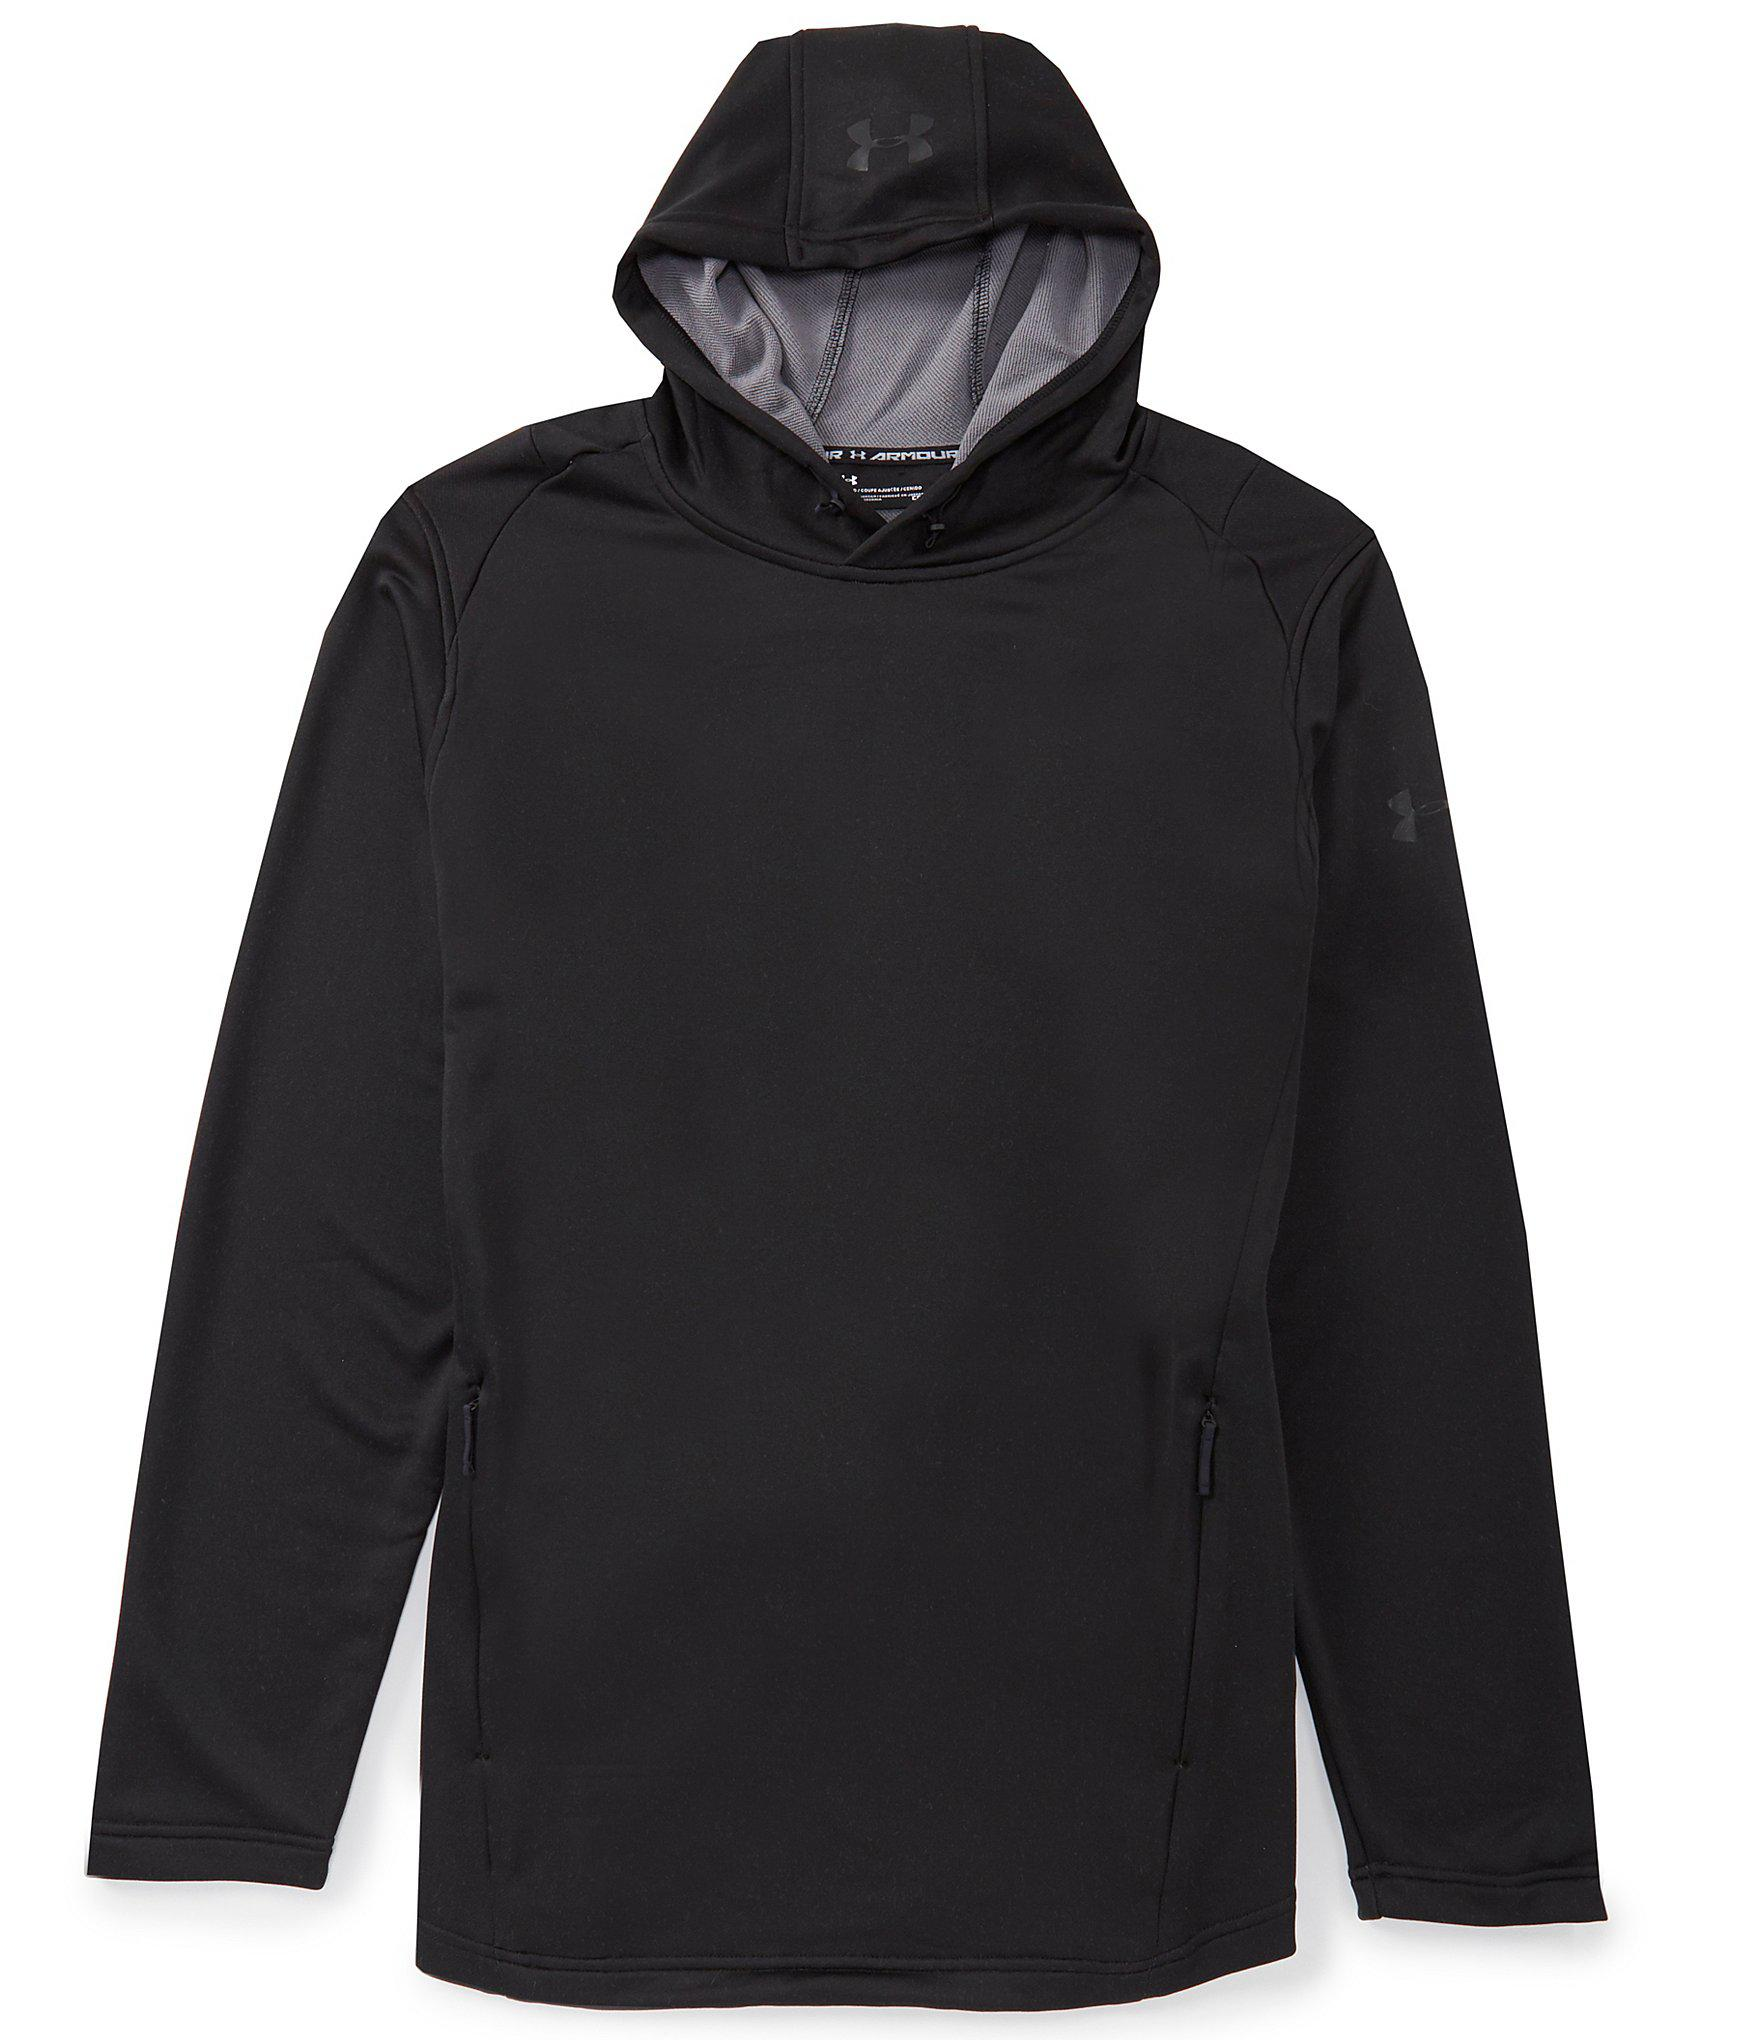 ebff08b65 Lyst - Under Armour Mk1 Terry Long-sleeve Hoodie in Black for Men